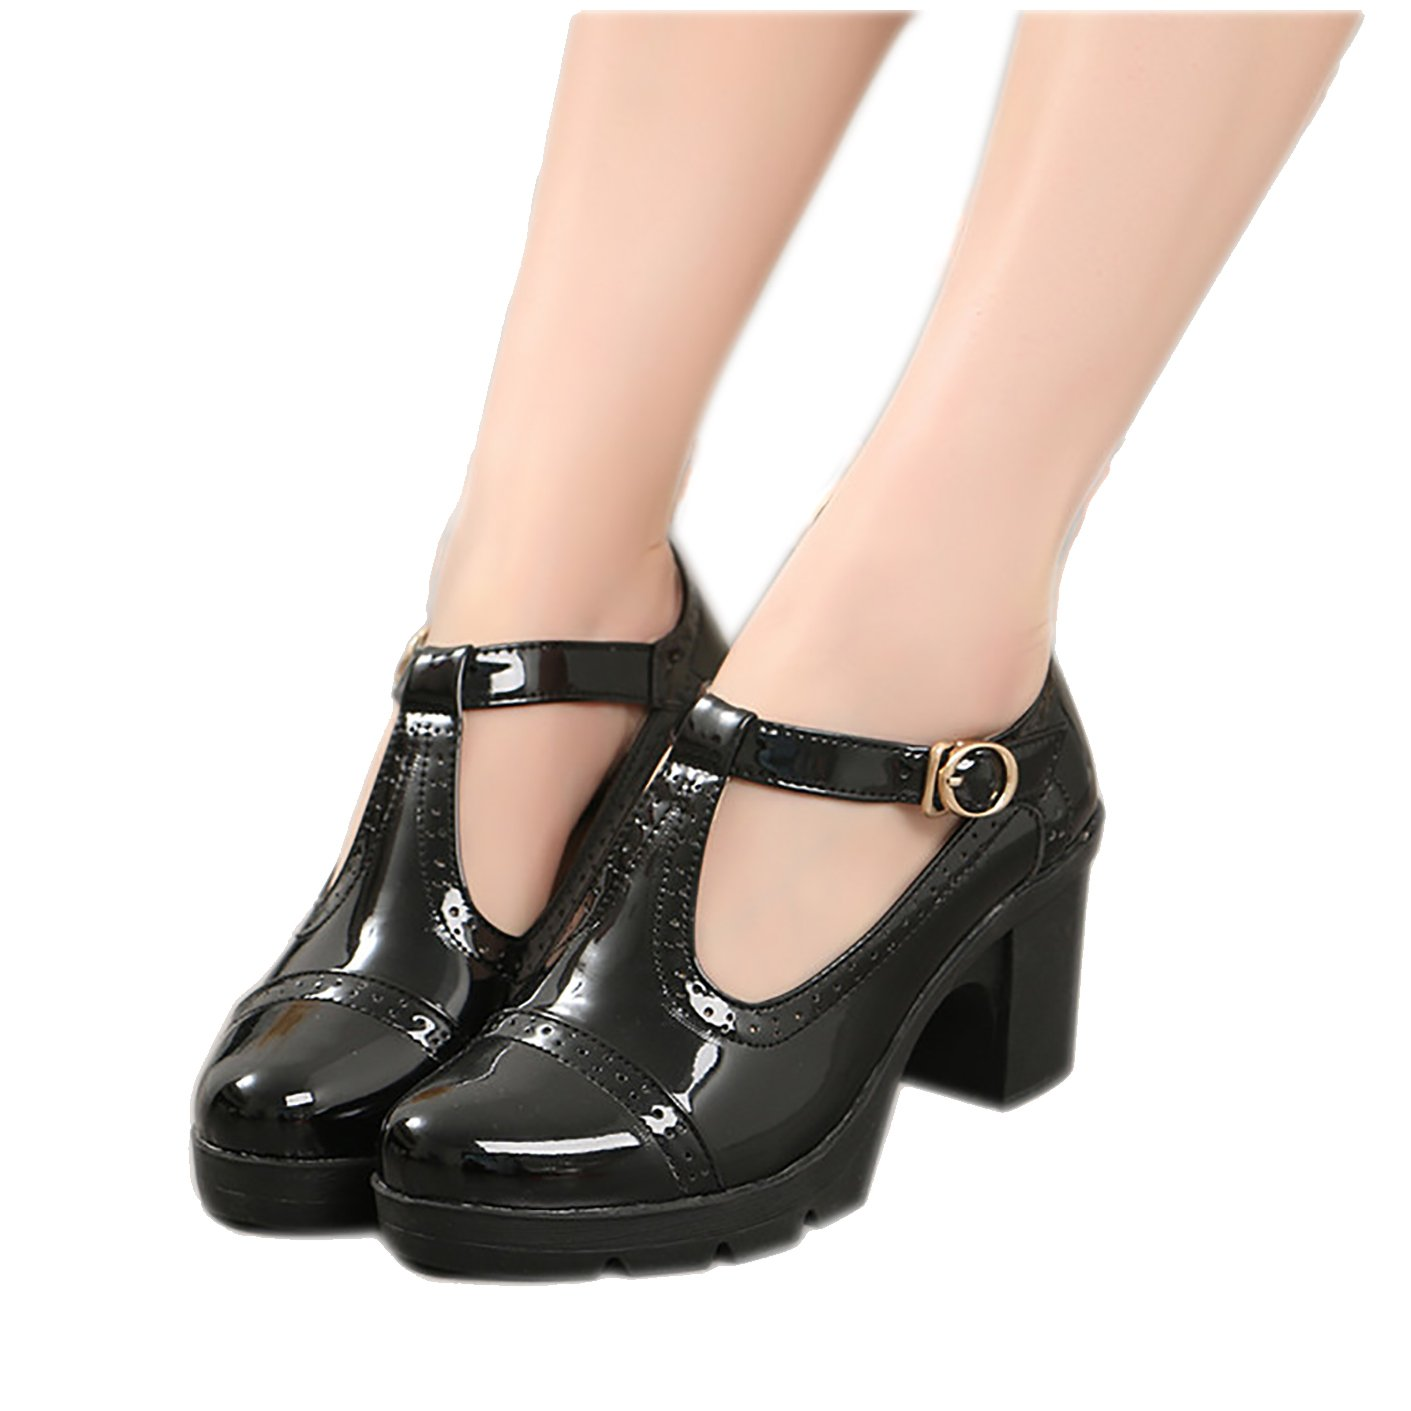 Xipai Women's T-Strap Platform Shoes Mid-Heel Vintage Oxfords Dress Shoes 02Black US 8.5